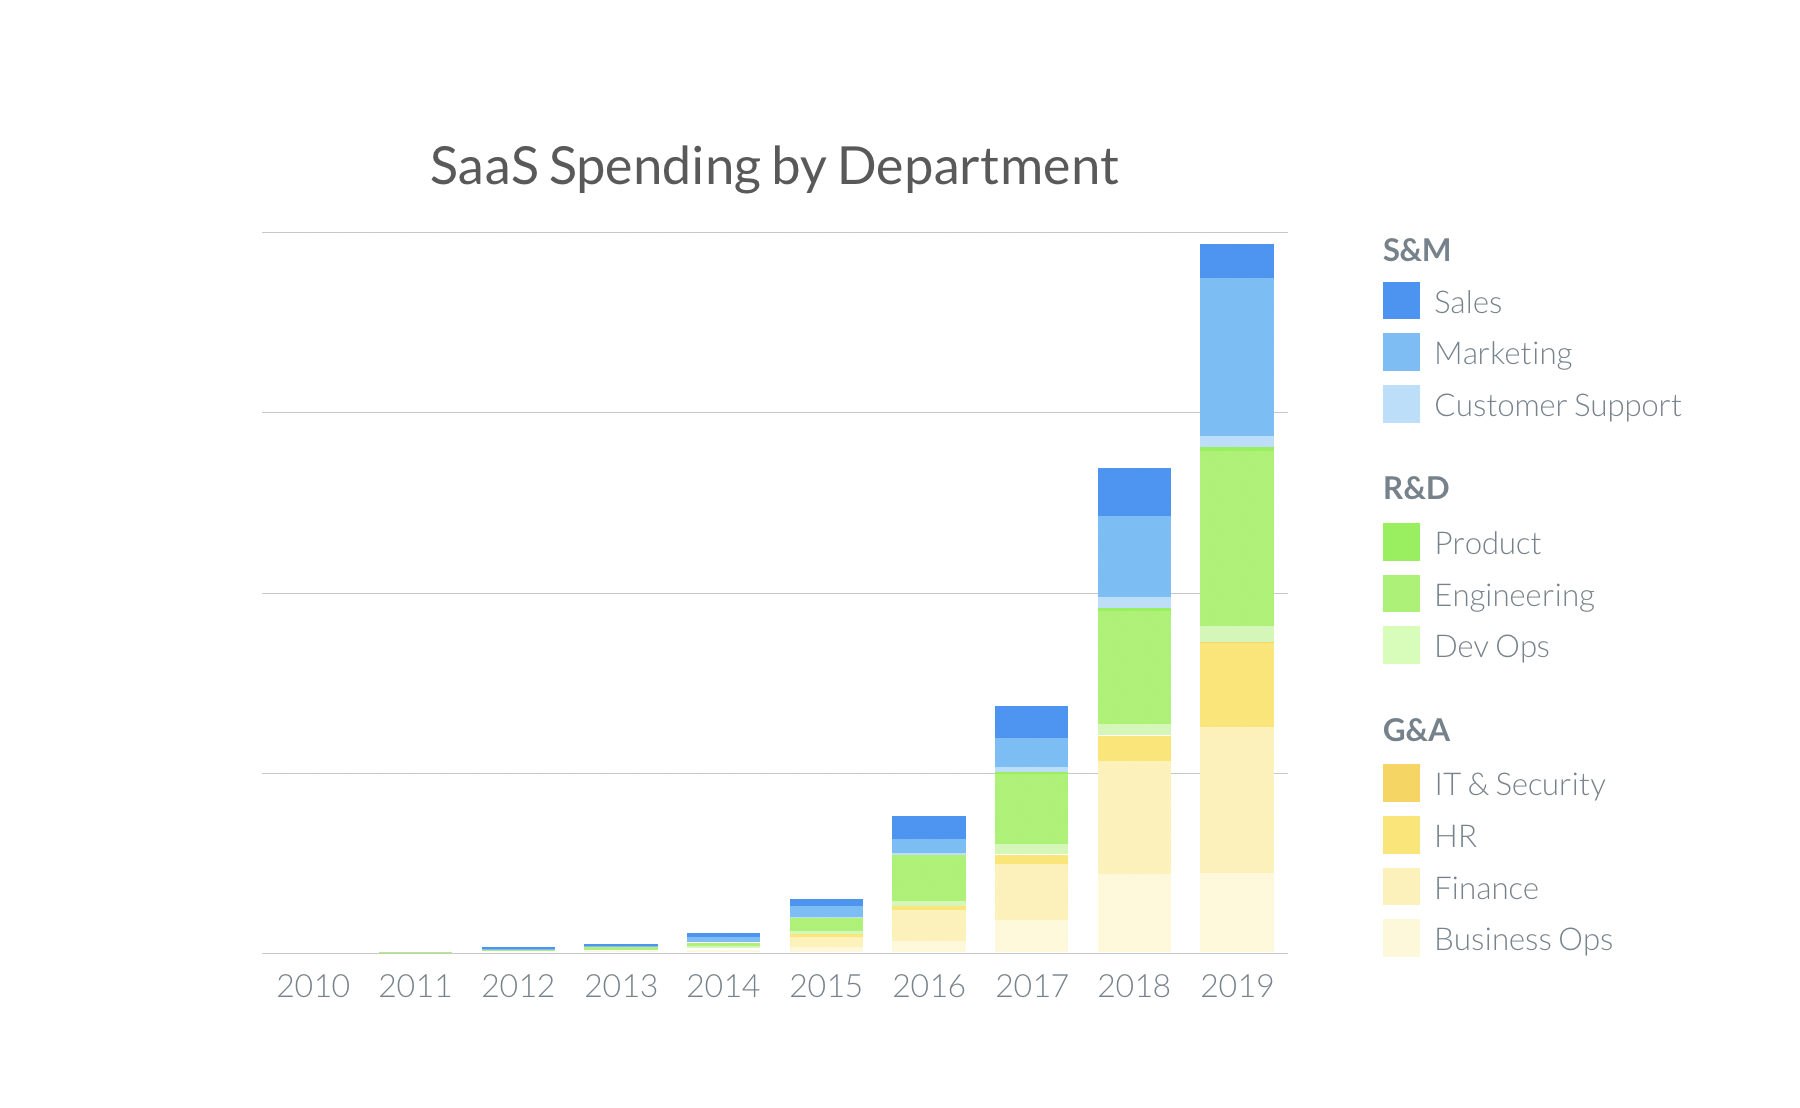 SaaS Spending By Department growth (2020)